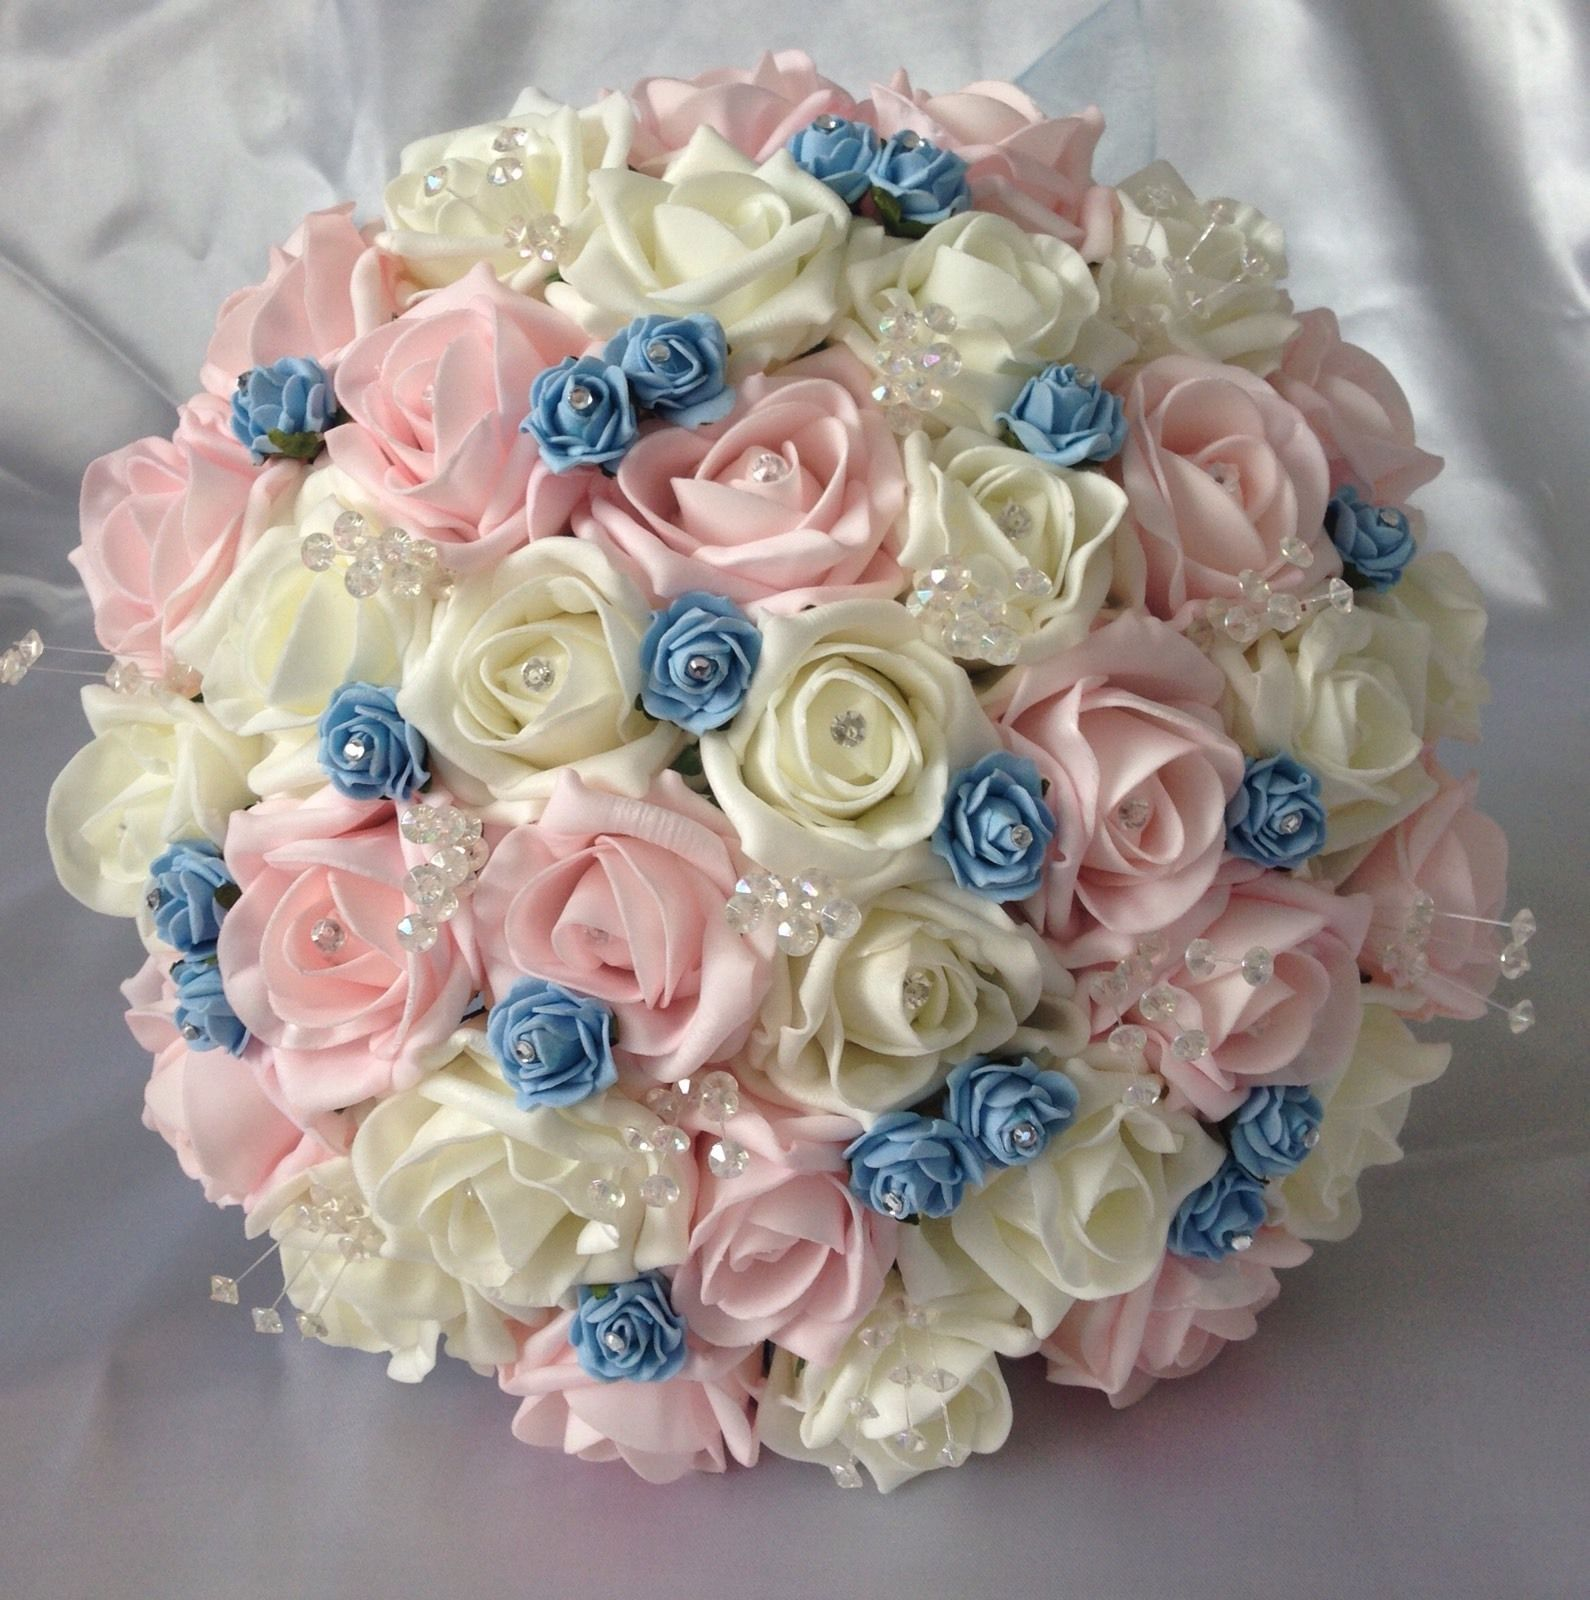 Artificial wedding flowers pink ivory blue rose brides wedding artificial wedding flowers pink ivory blue rose brides wedding crystal bouquet mightylinksfo